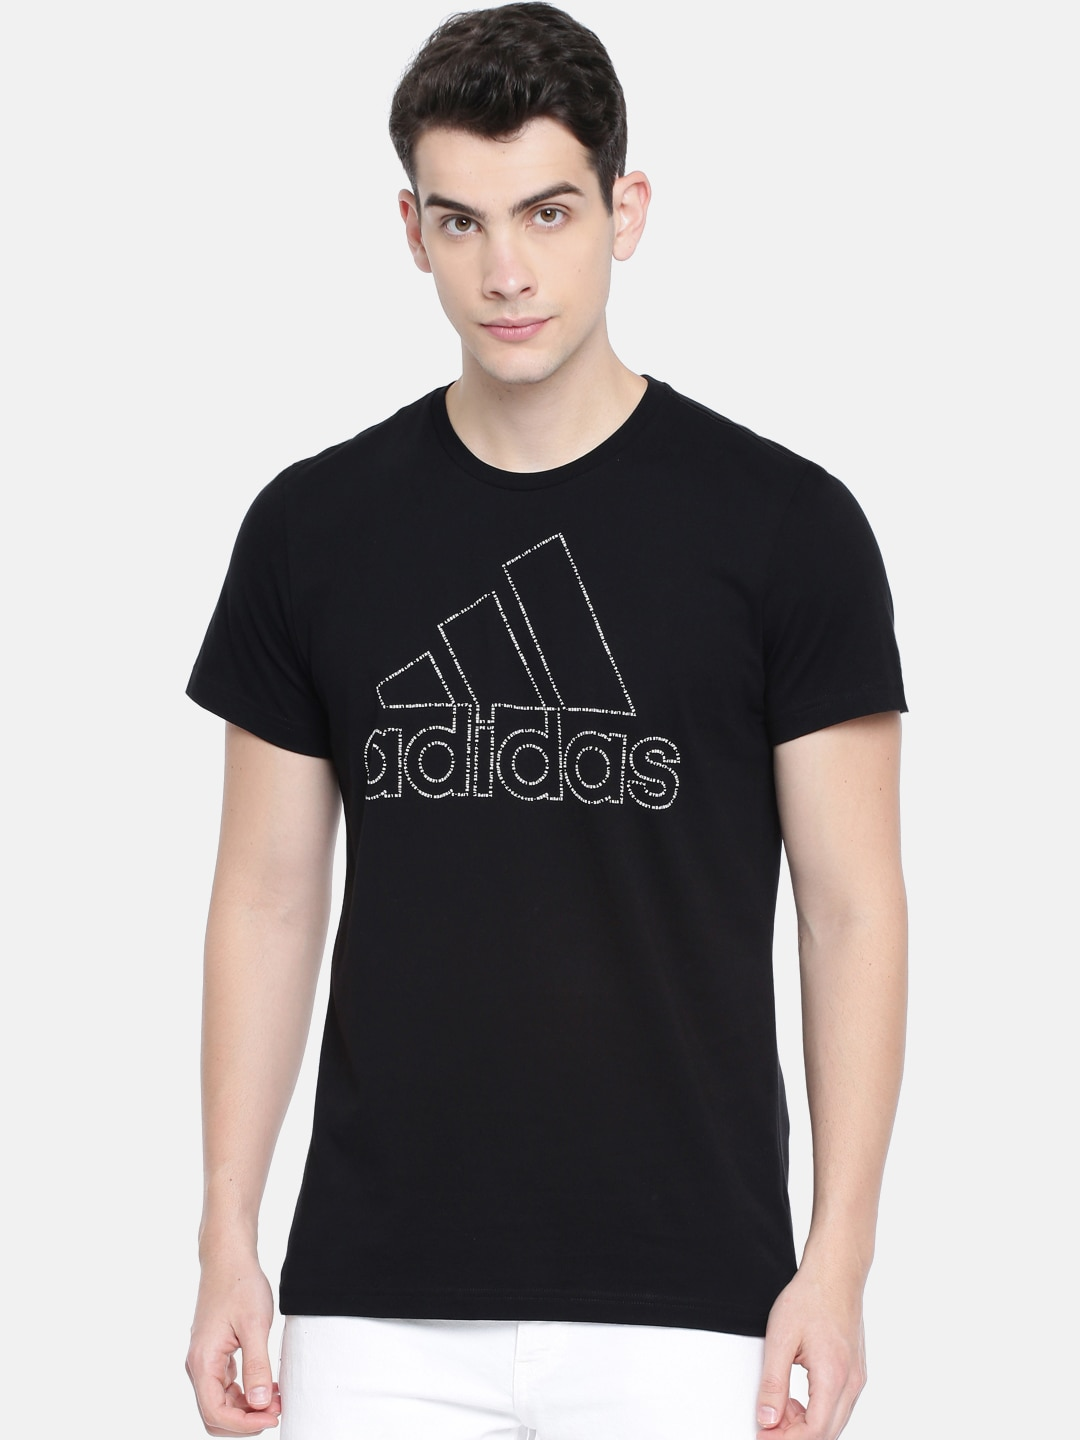 c38e11ed200 Adidas T-Shirts - Buy Adidas Tshirts Online in India